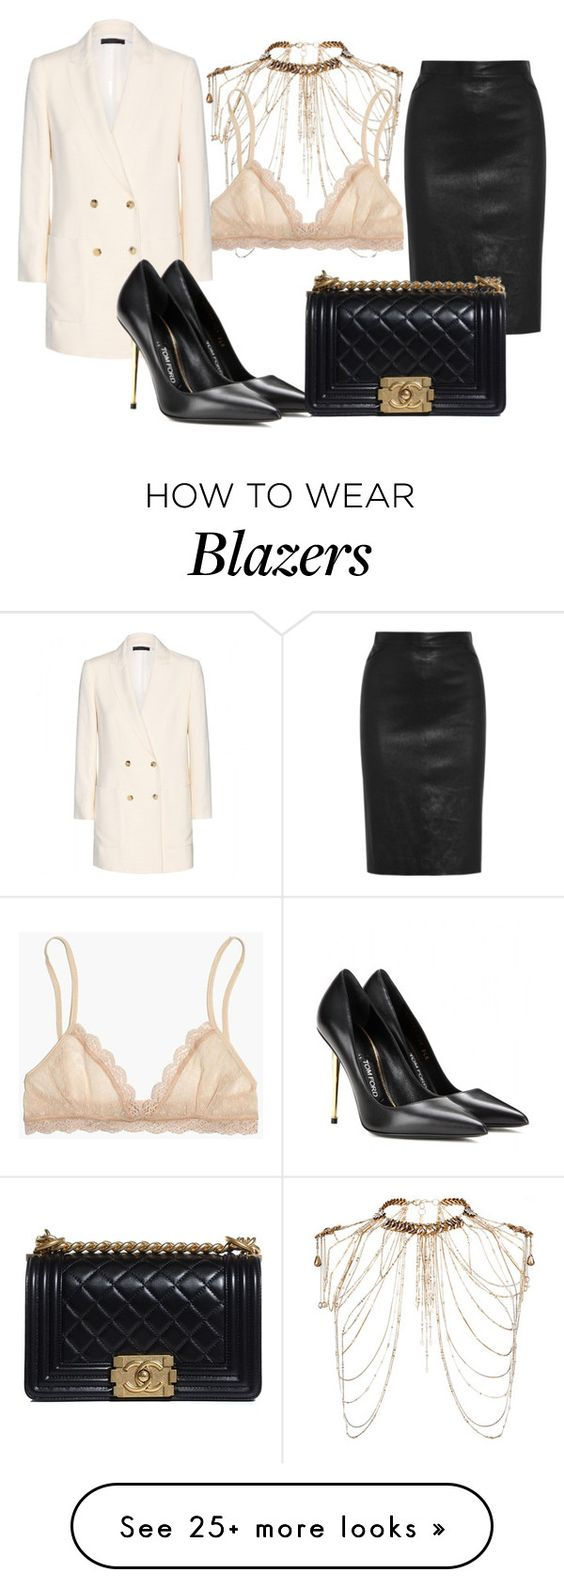 """""""walkin in da bra"""" by marija-colic7 on Polyvore featuring Erickson Beamon, Madewell, Givenchy, The Row, Tom Ford and Chanel"""